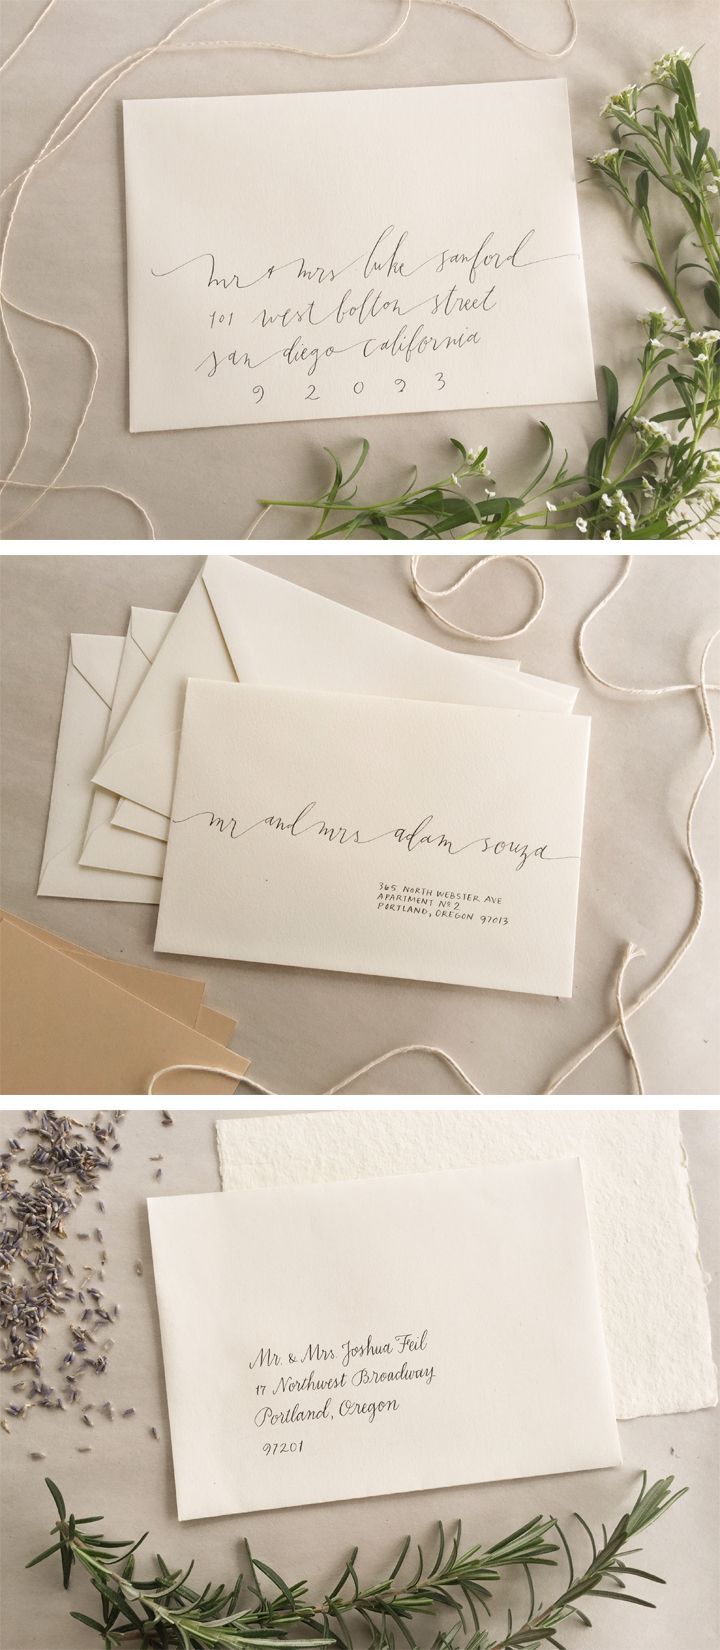 how to address wedding invites%0A PALOMINO   contemporary calligraphy envelope addressing